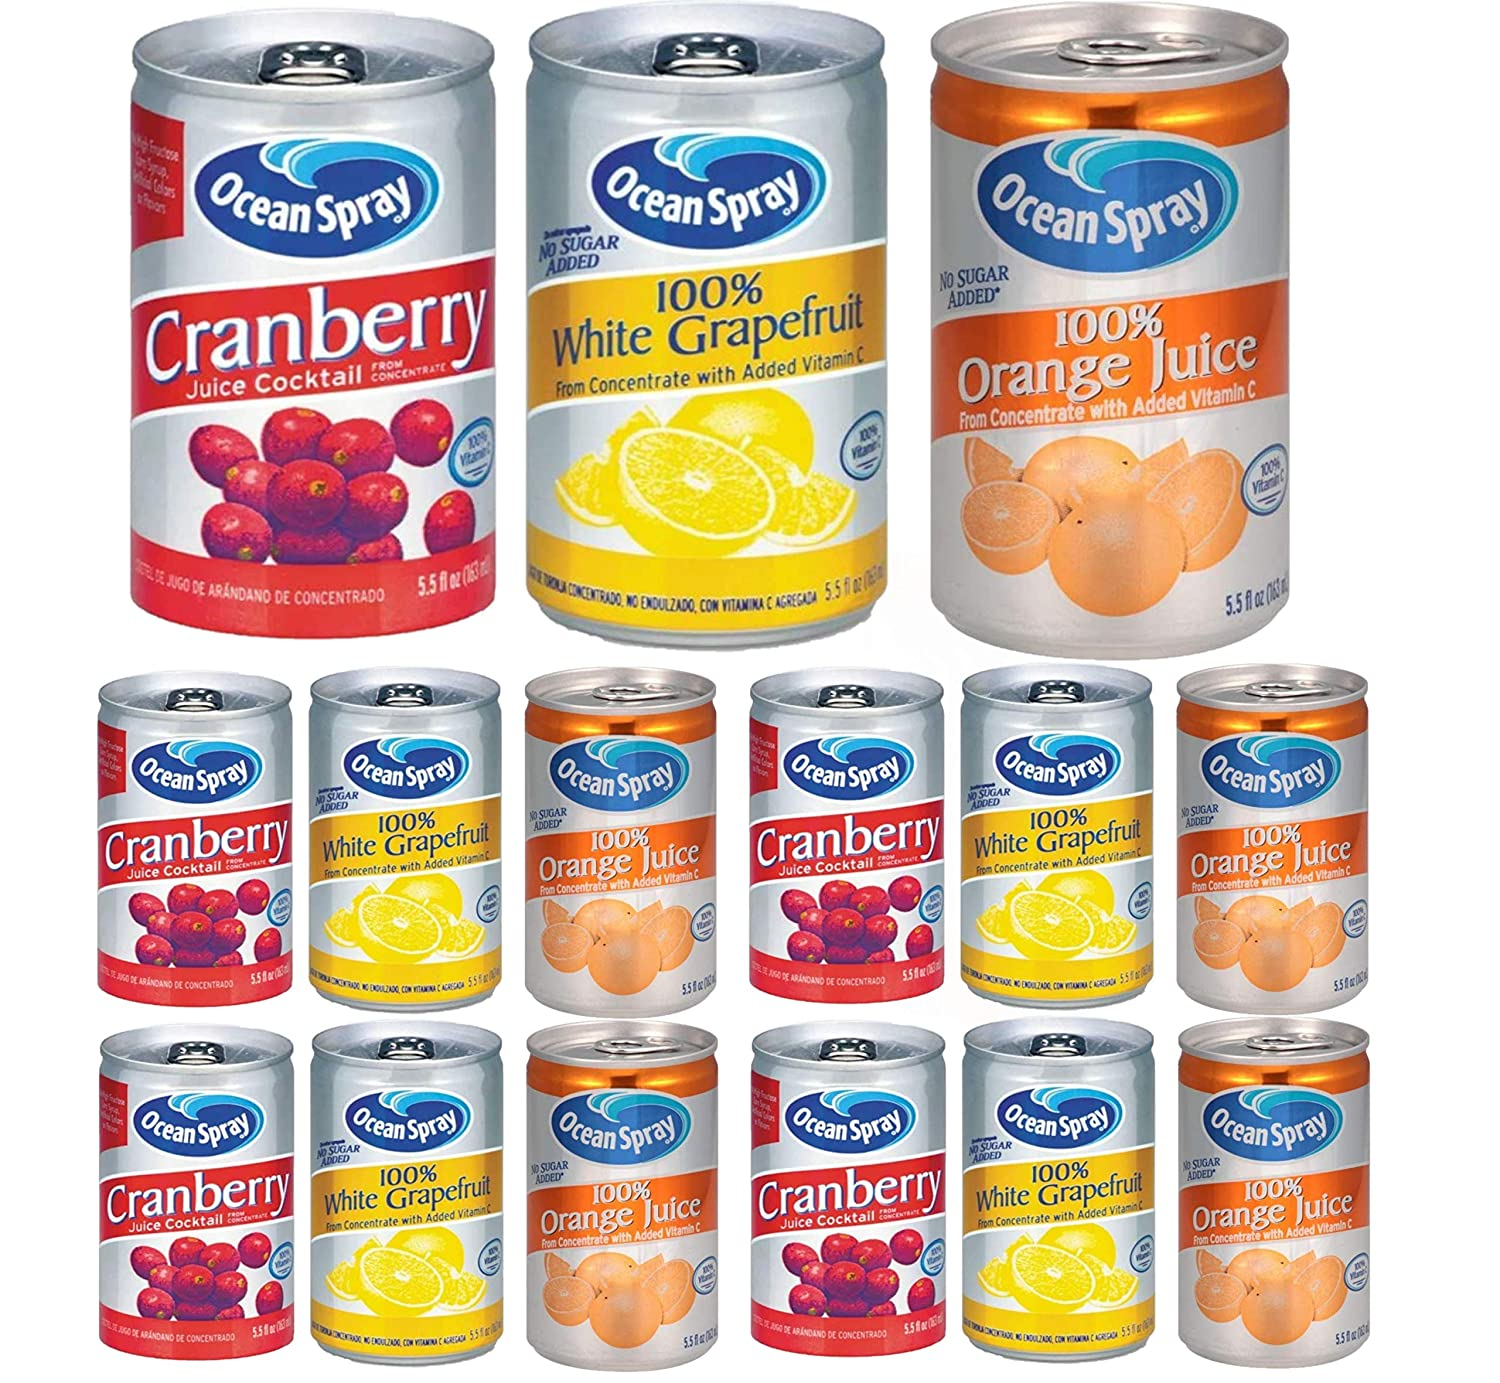 OCEAN SPRAY FRUIT JUICES-5.5oz CANS-3 Flavor/12 Can Variety Pack-4 of each flavor